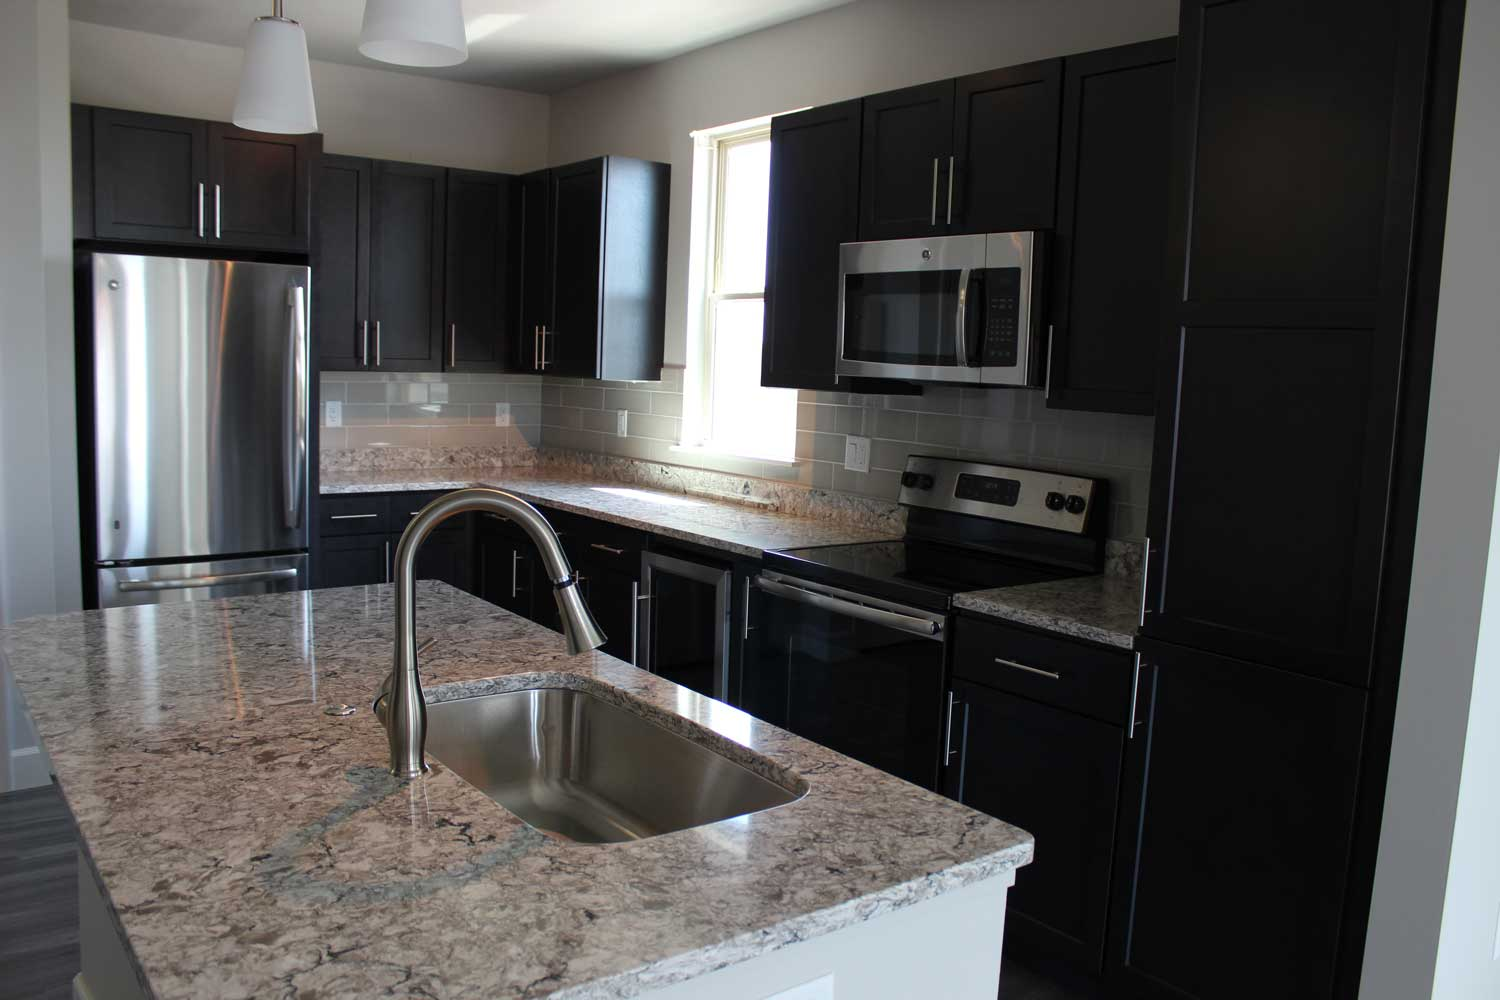 Stainless Steel Appliance at The Vue at Creve Coeur Apartments in Creve Coeur, MO